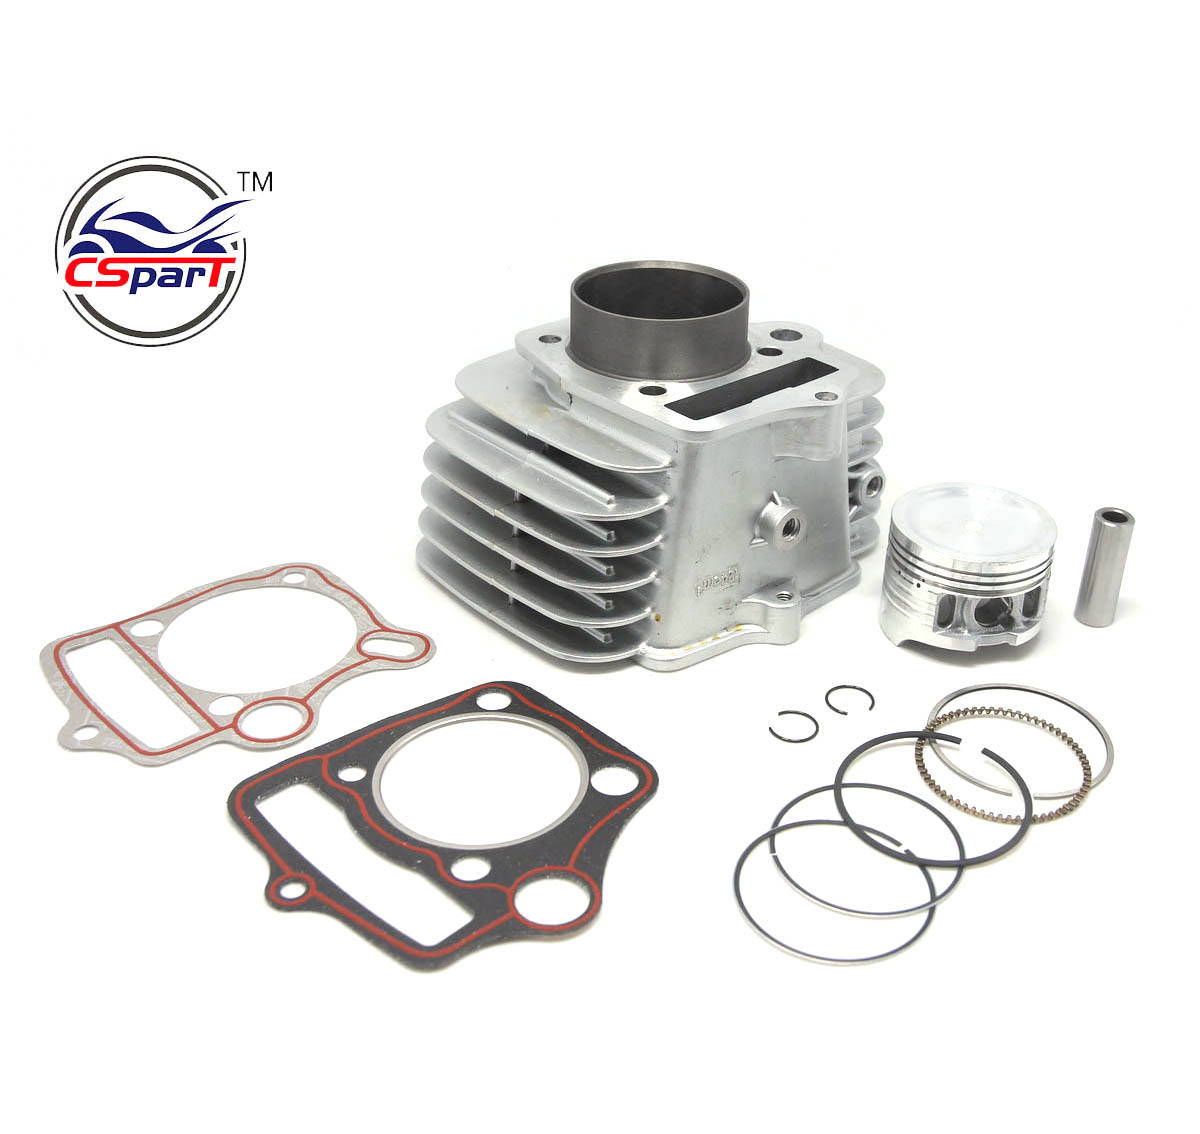 52.4MM 13MM 78MM Cylinder kit For Loncin Skyteam 125CC 1P52FMI Engine Dirt Bike Parts